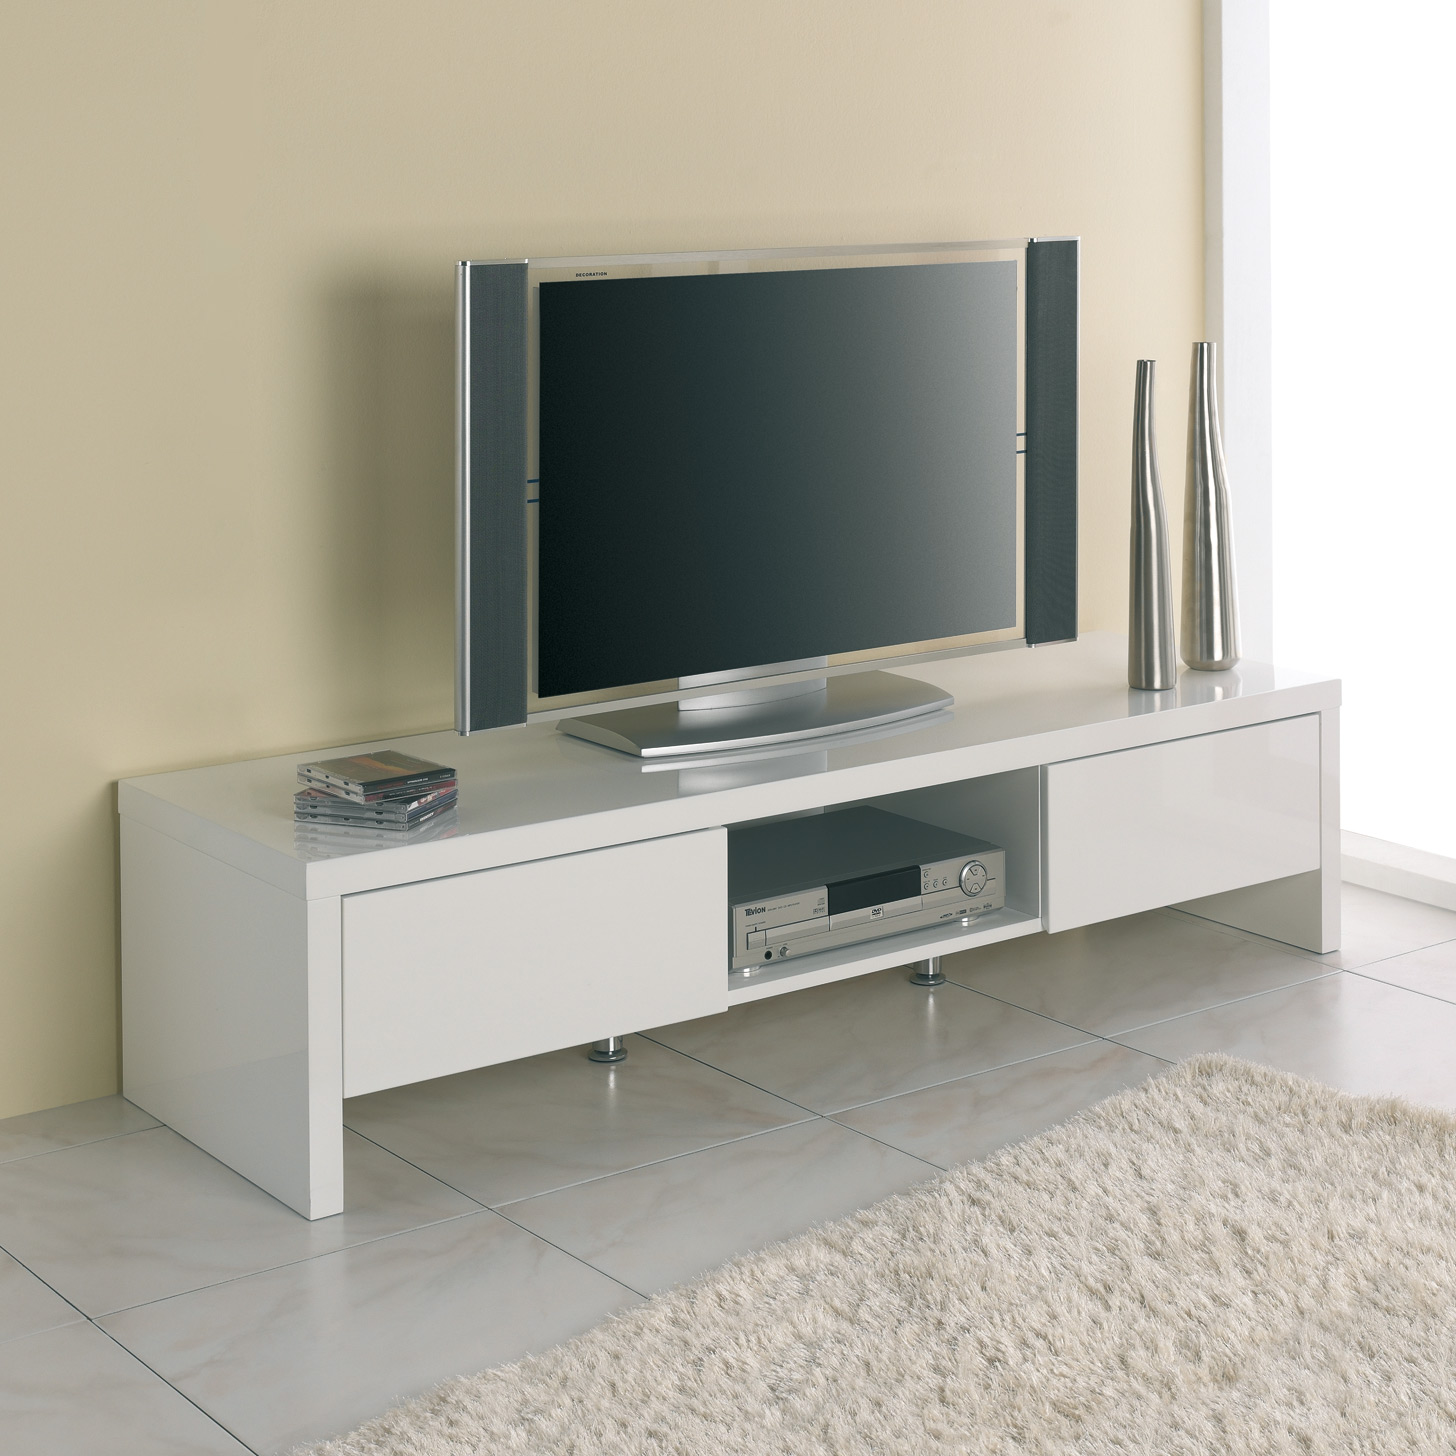 Meuble tv 1 metre de hauteur royal sofa id e de canap for Meuble tv 90